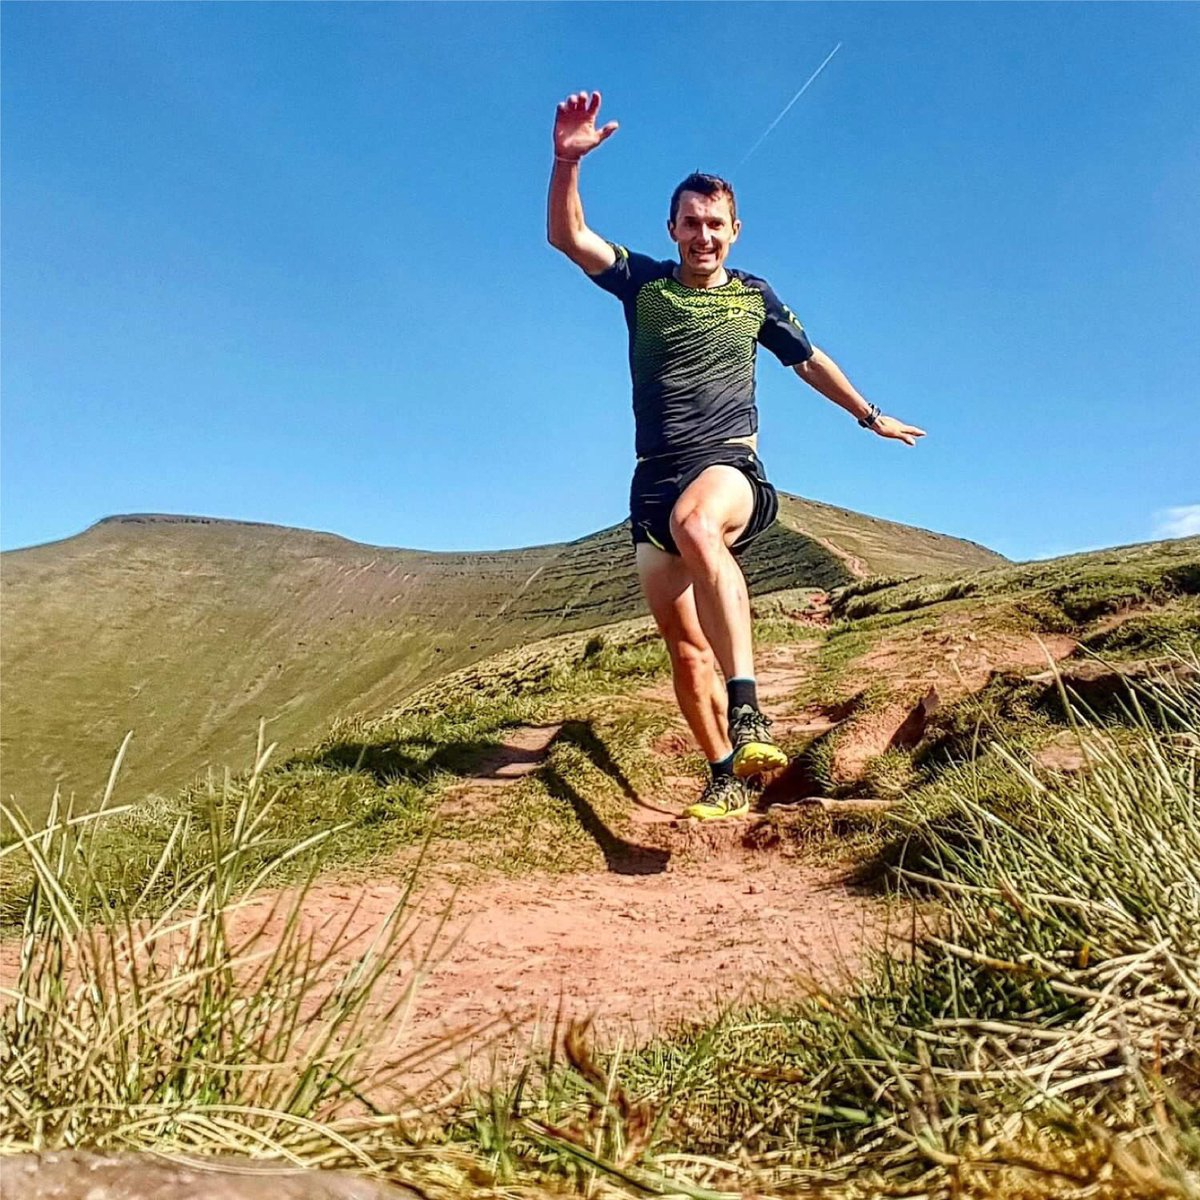 #HumpDay setting in? Get inspired by these great Scott Snowdonia Trail tips!   https:// goo.gl/NHikYf  &nbsp;   #TrailRunning <br>http://pic.twitter.com/zdrKaG8ARk